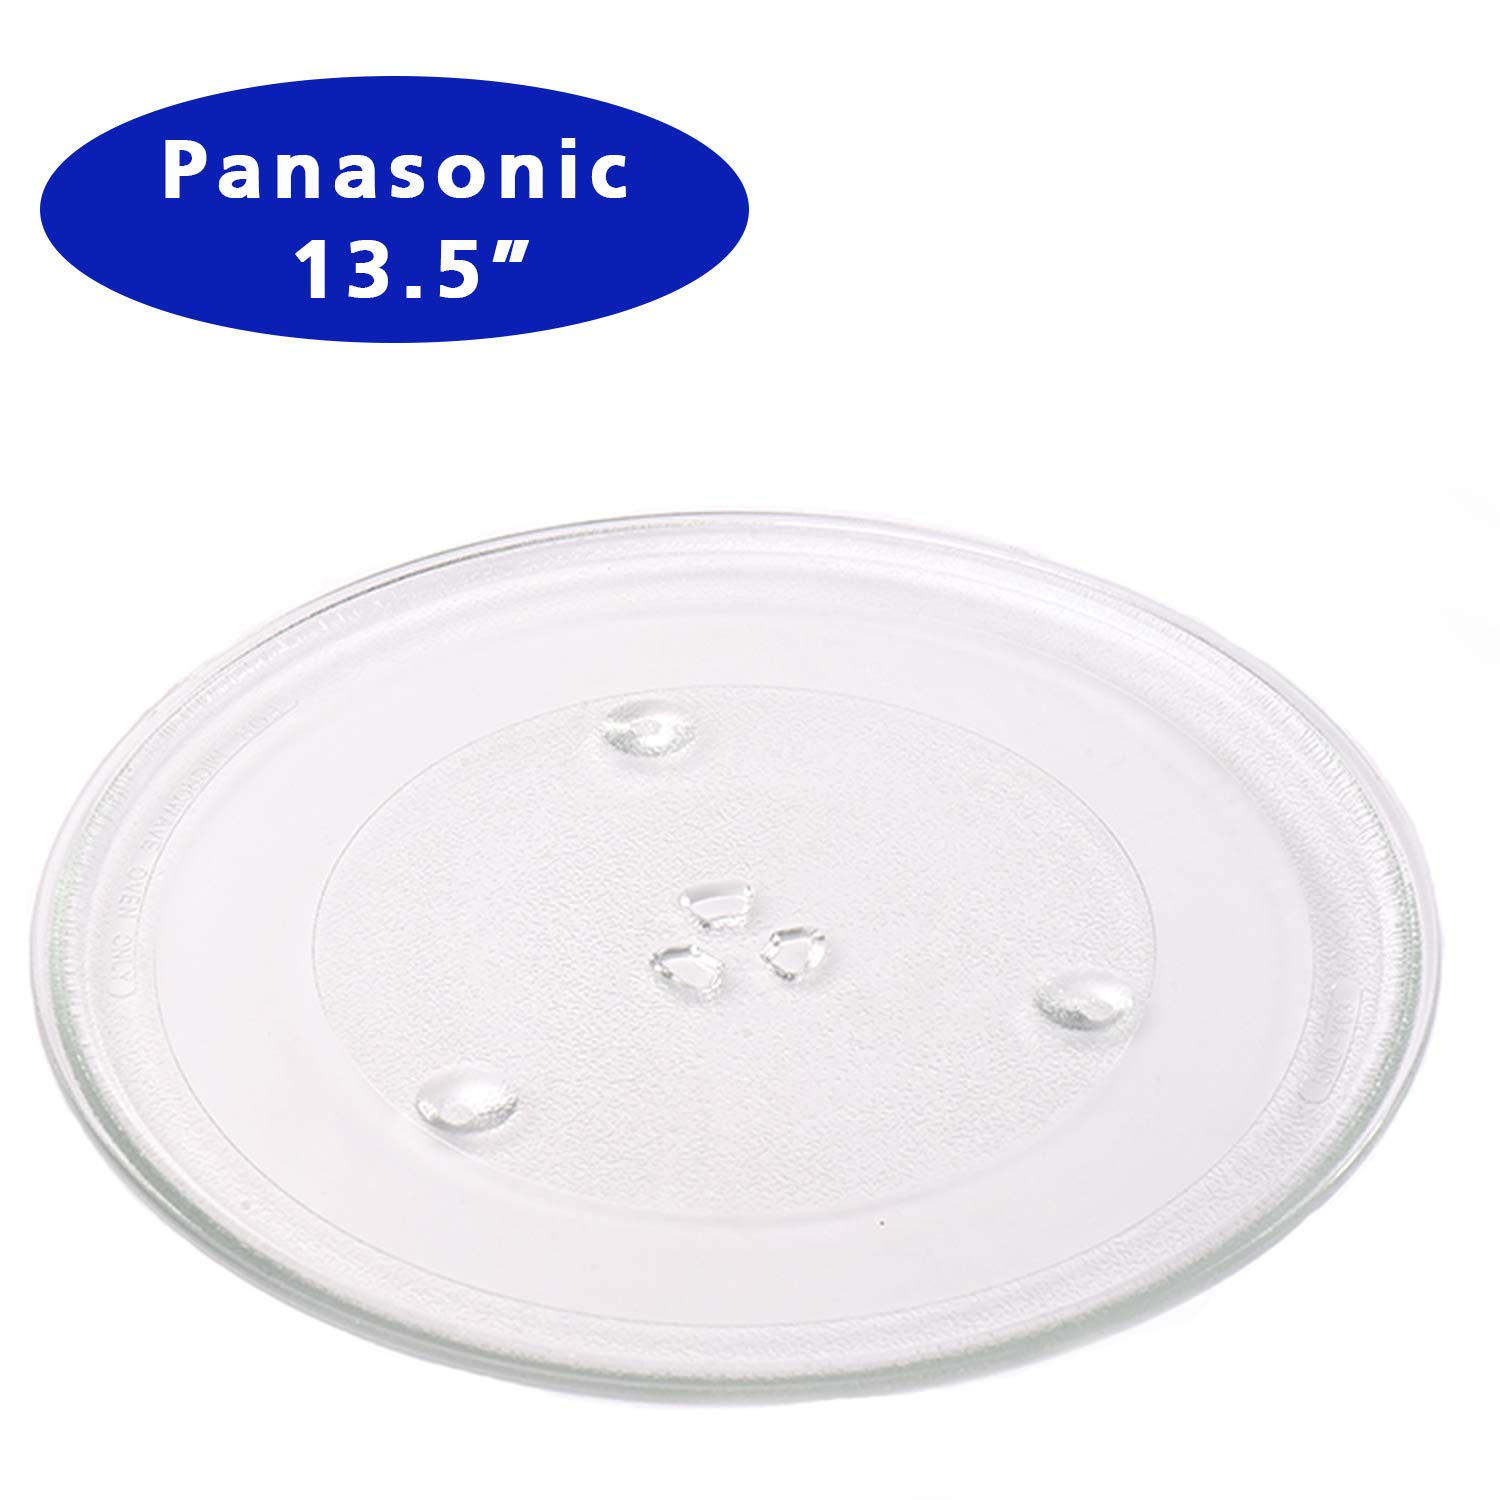 WB49X10002 Microwave Glass Turntable Tray G.E 13.5-inch